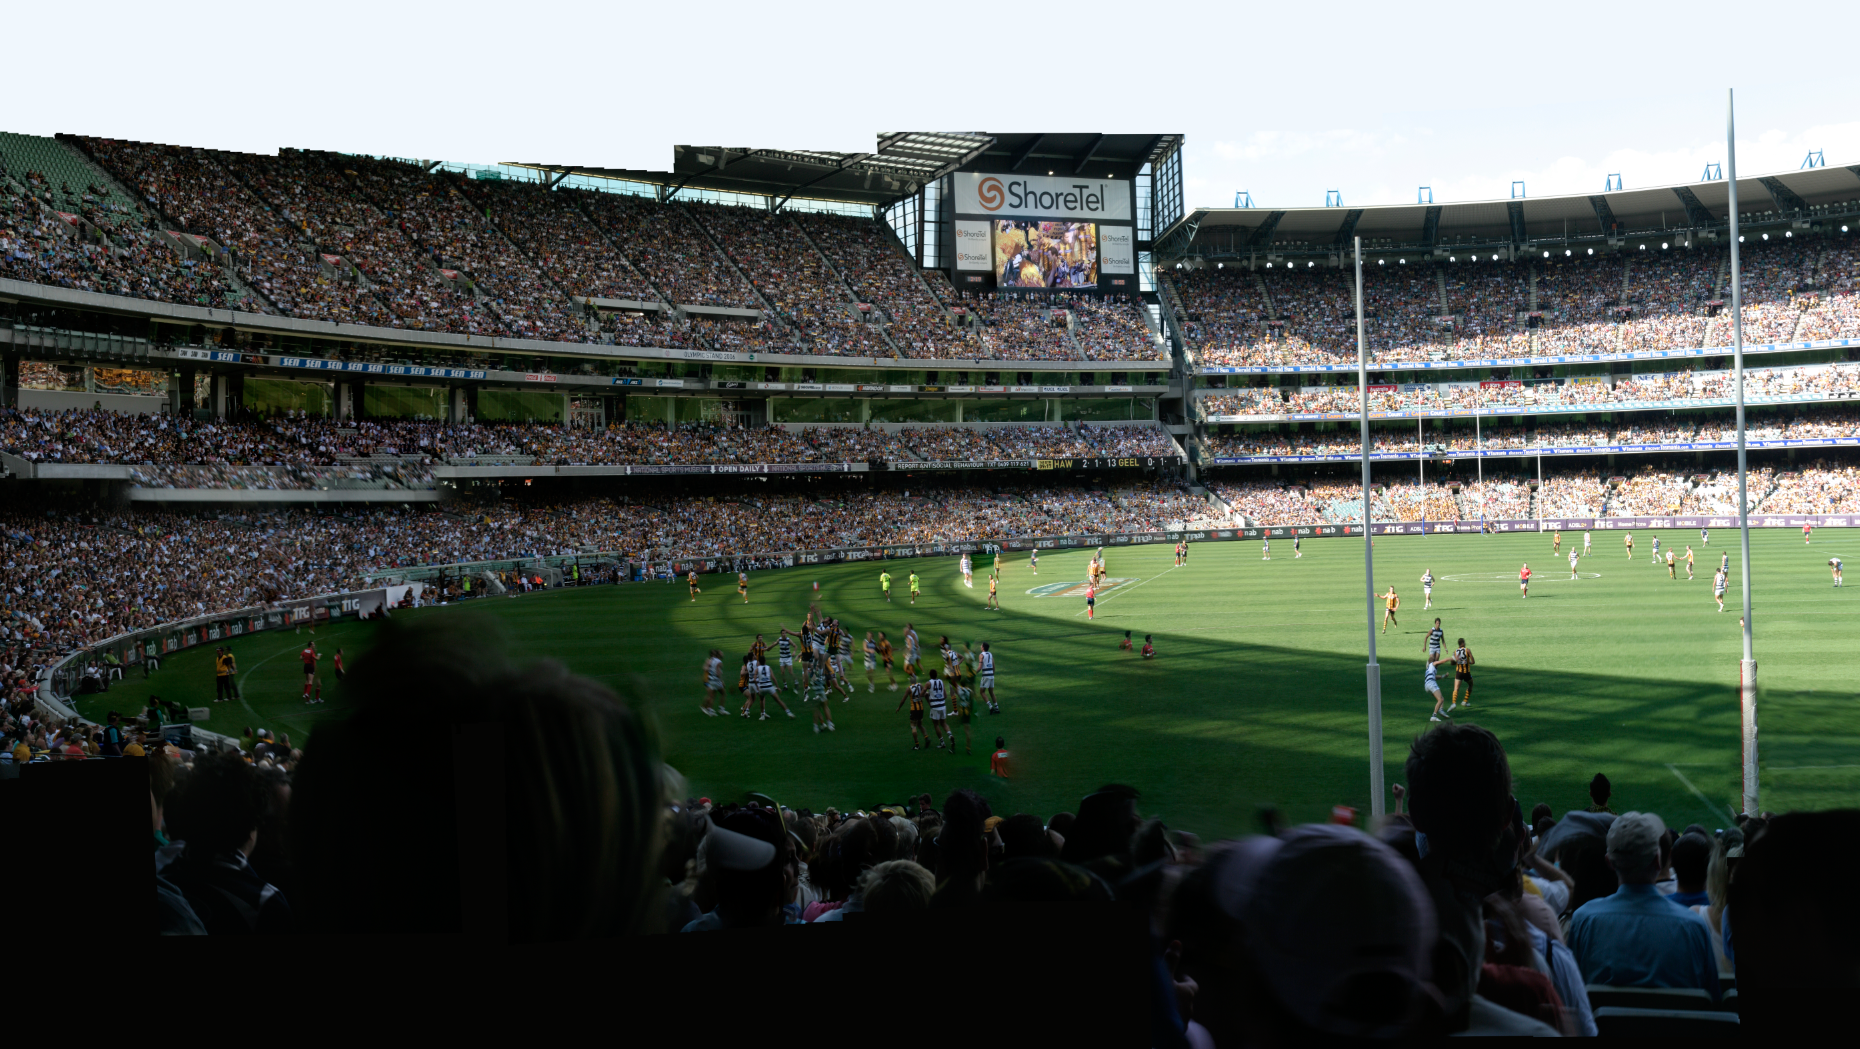 MCG Crowd detail